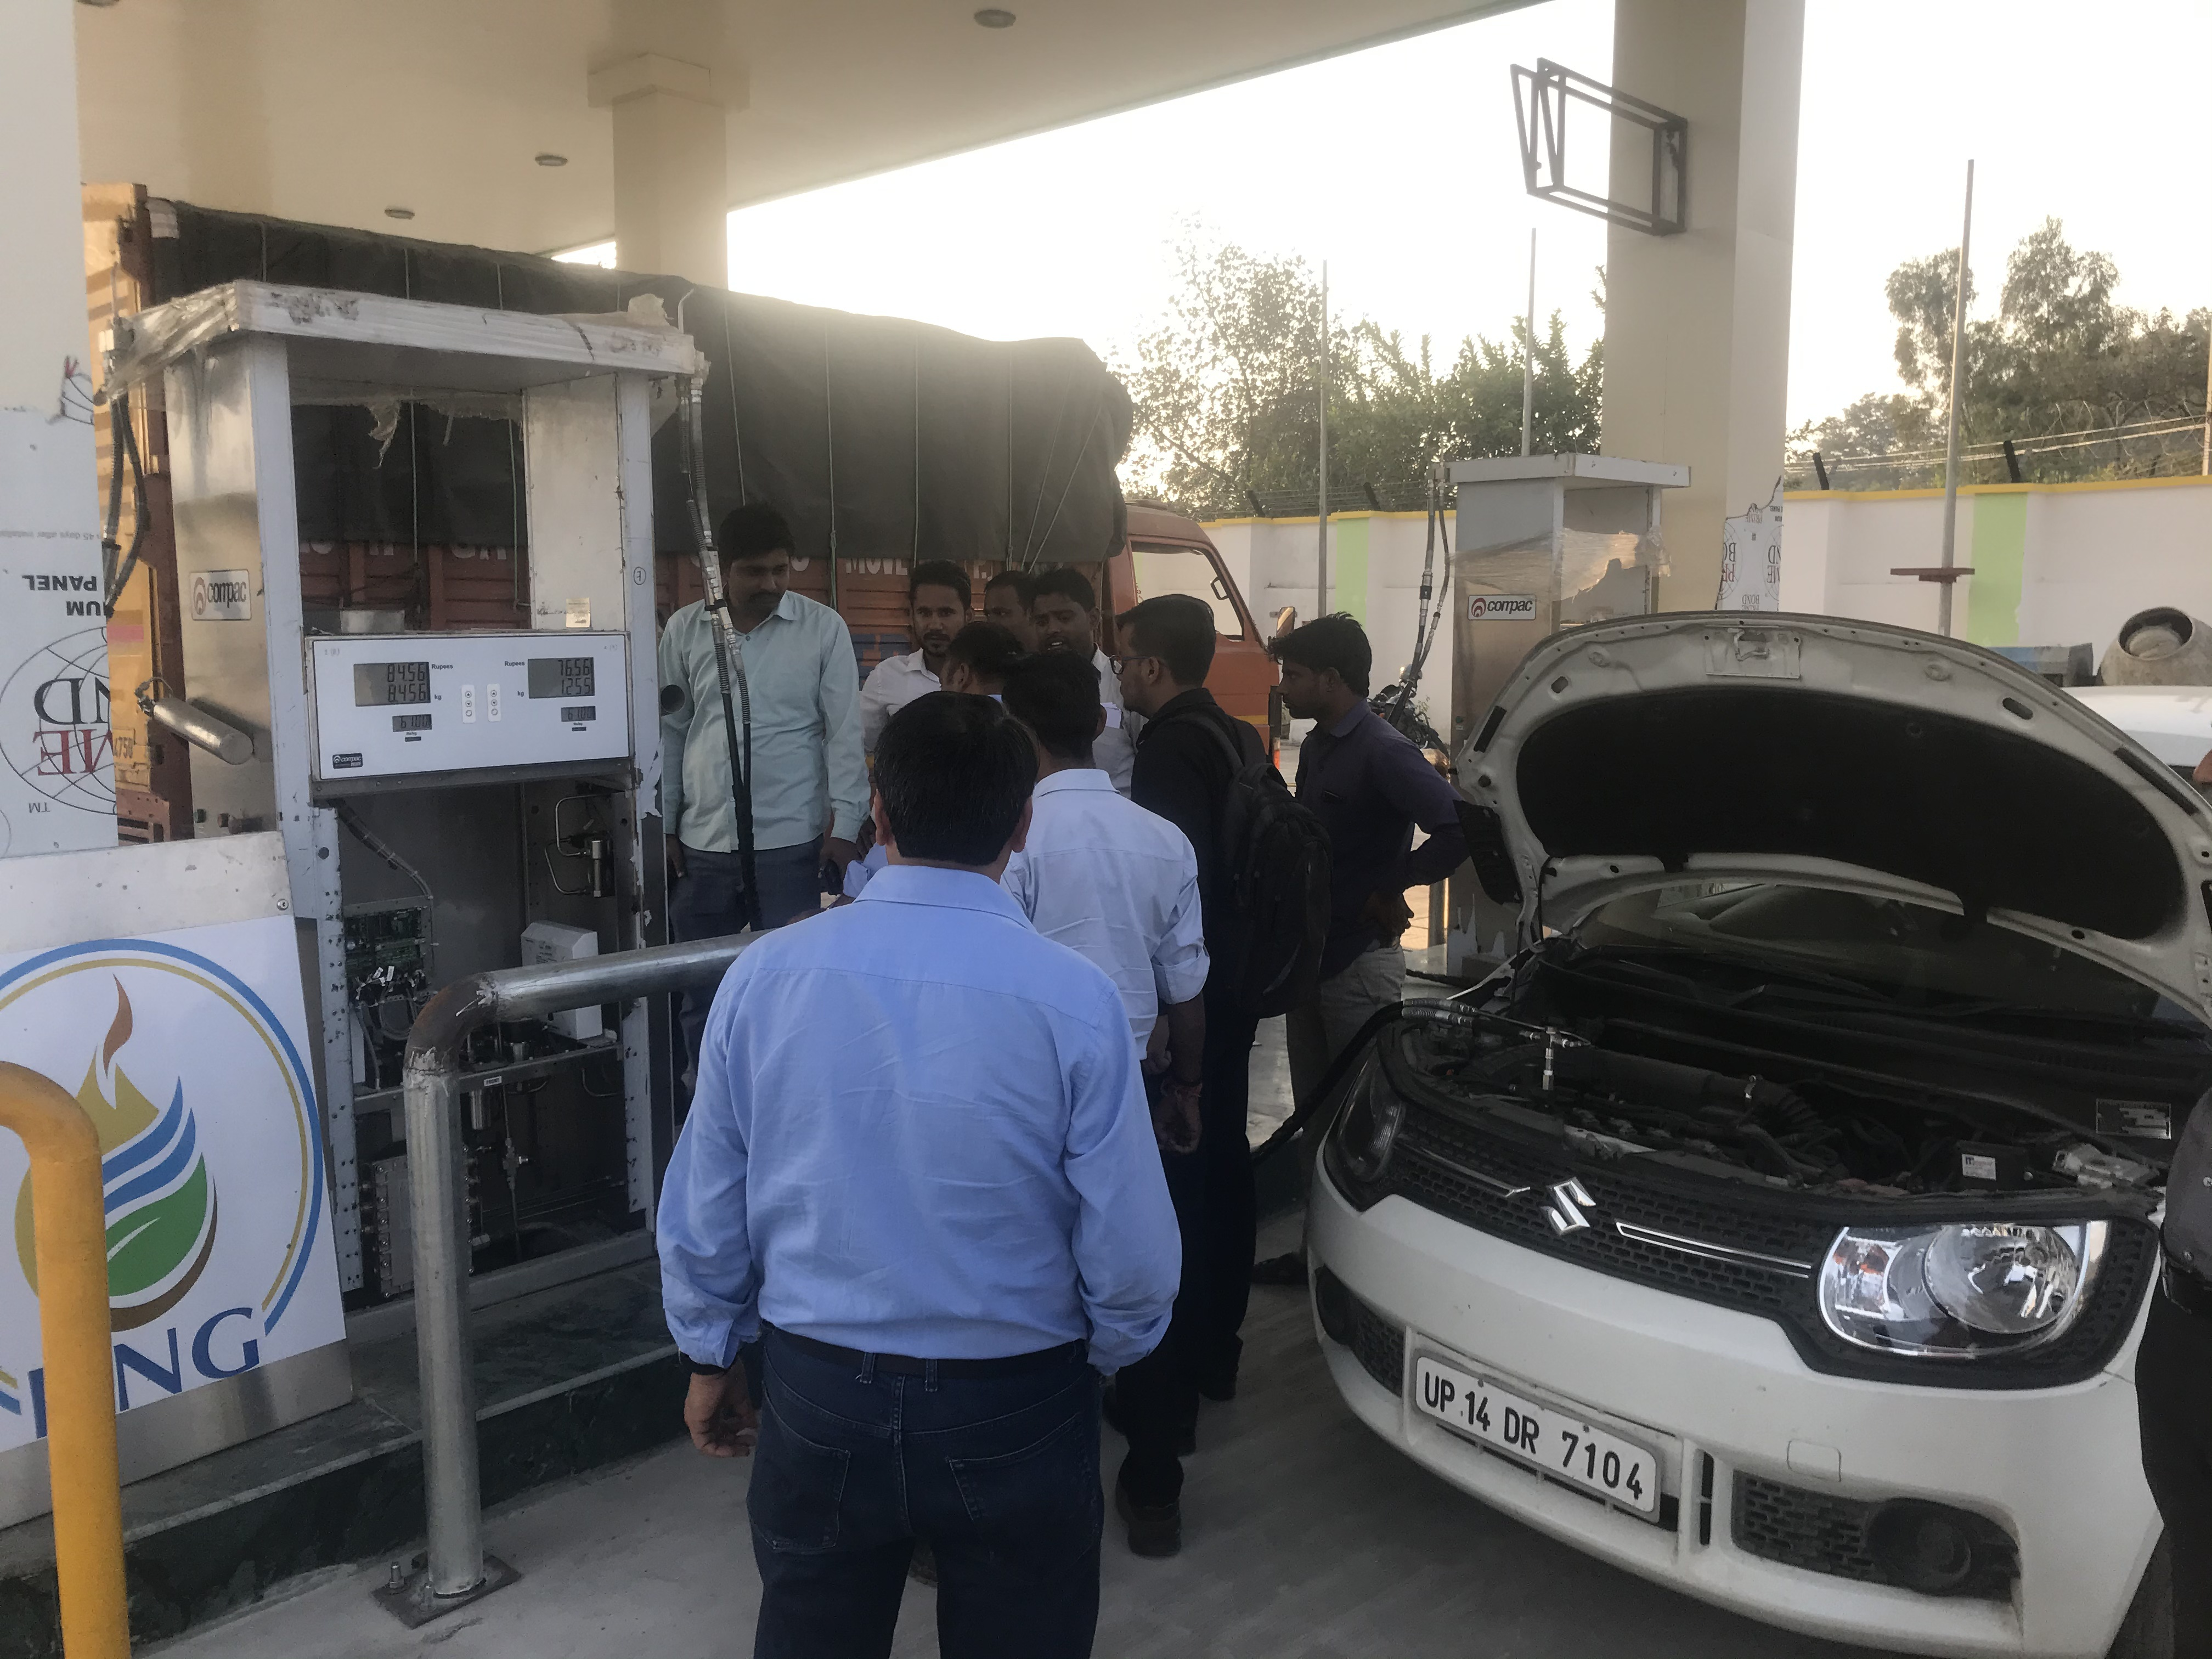 Is there any CNG pump in Haridwar? - Quora